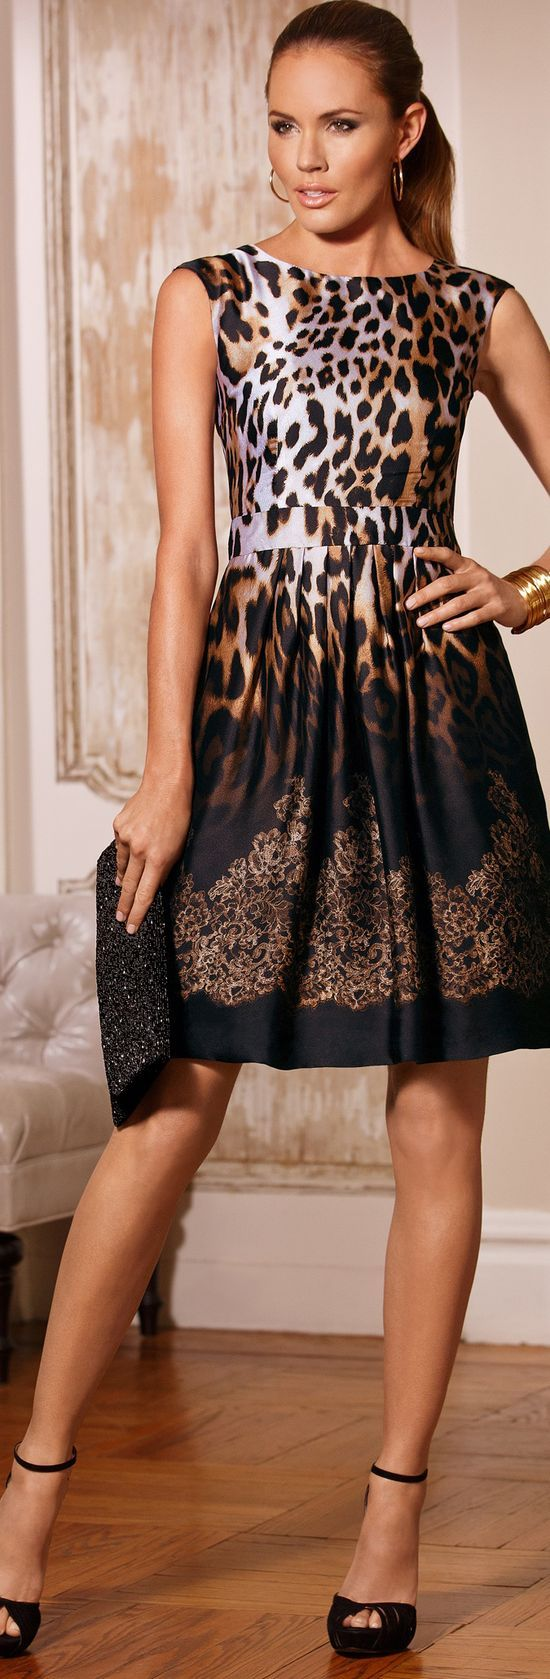 Bumping Hanger - sexy girl - take my breath away - cocktail style evening dress - #thejewelryhut